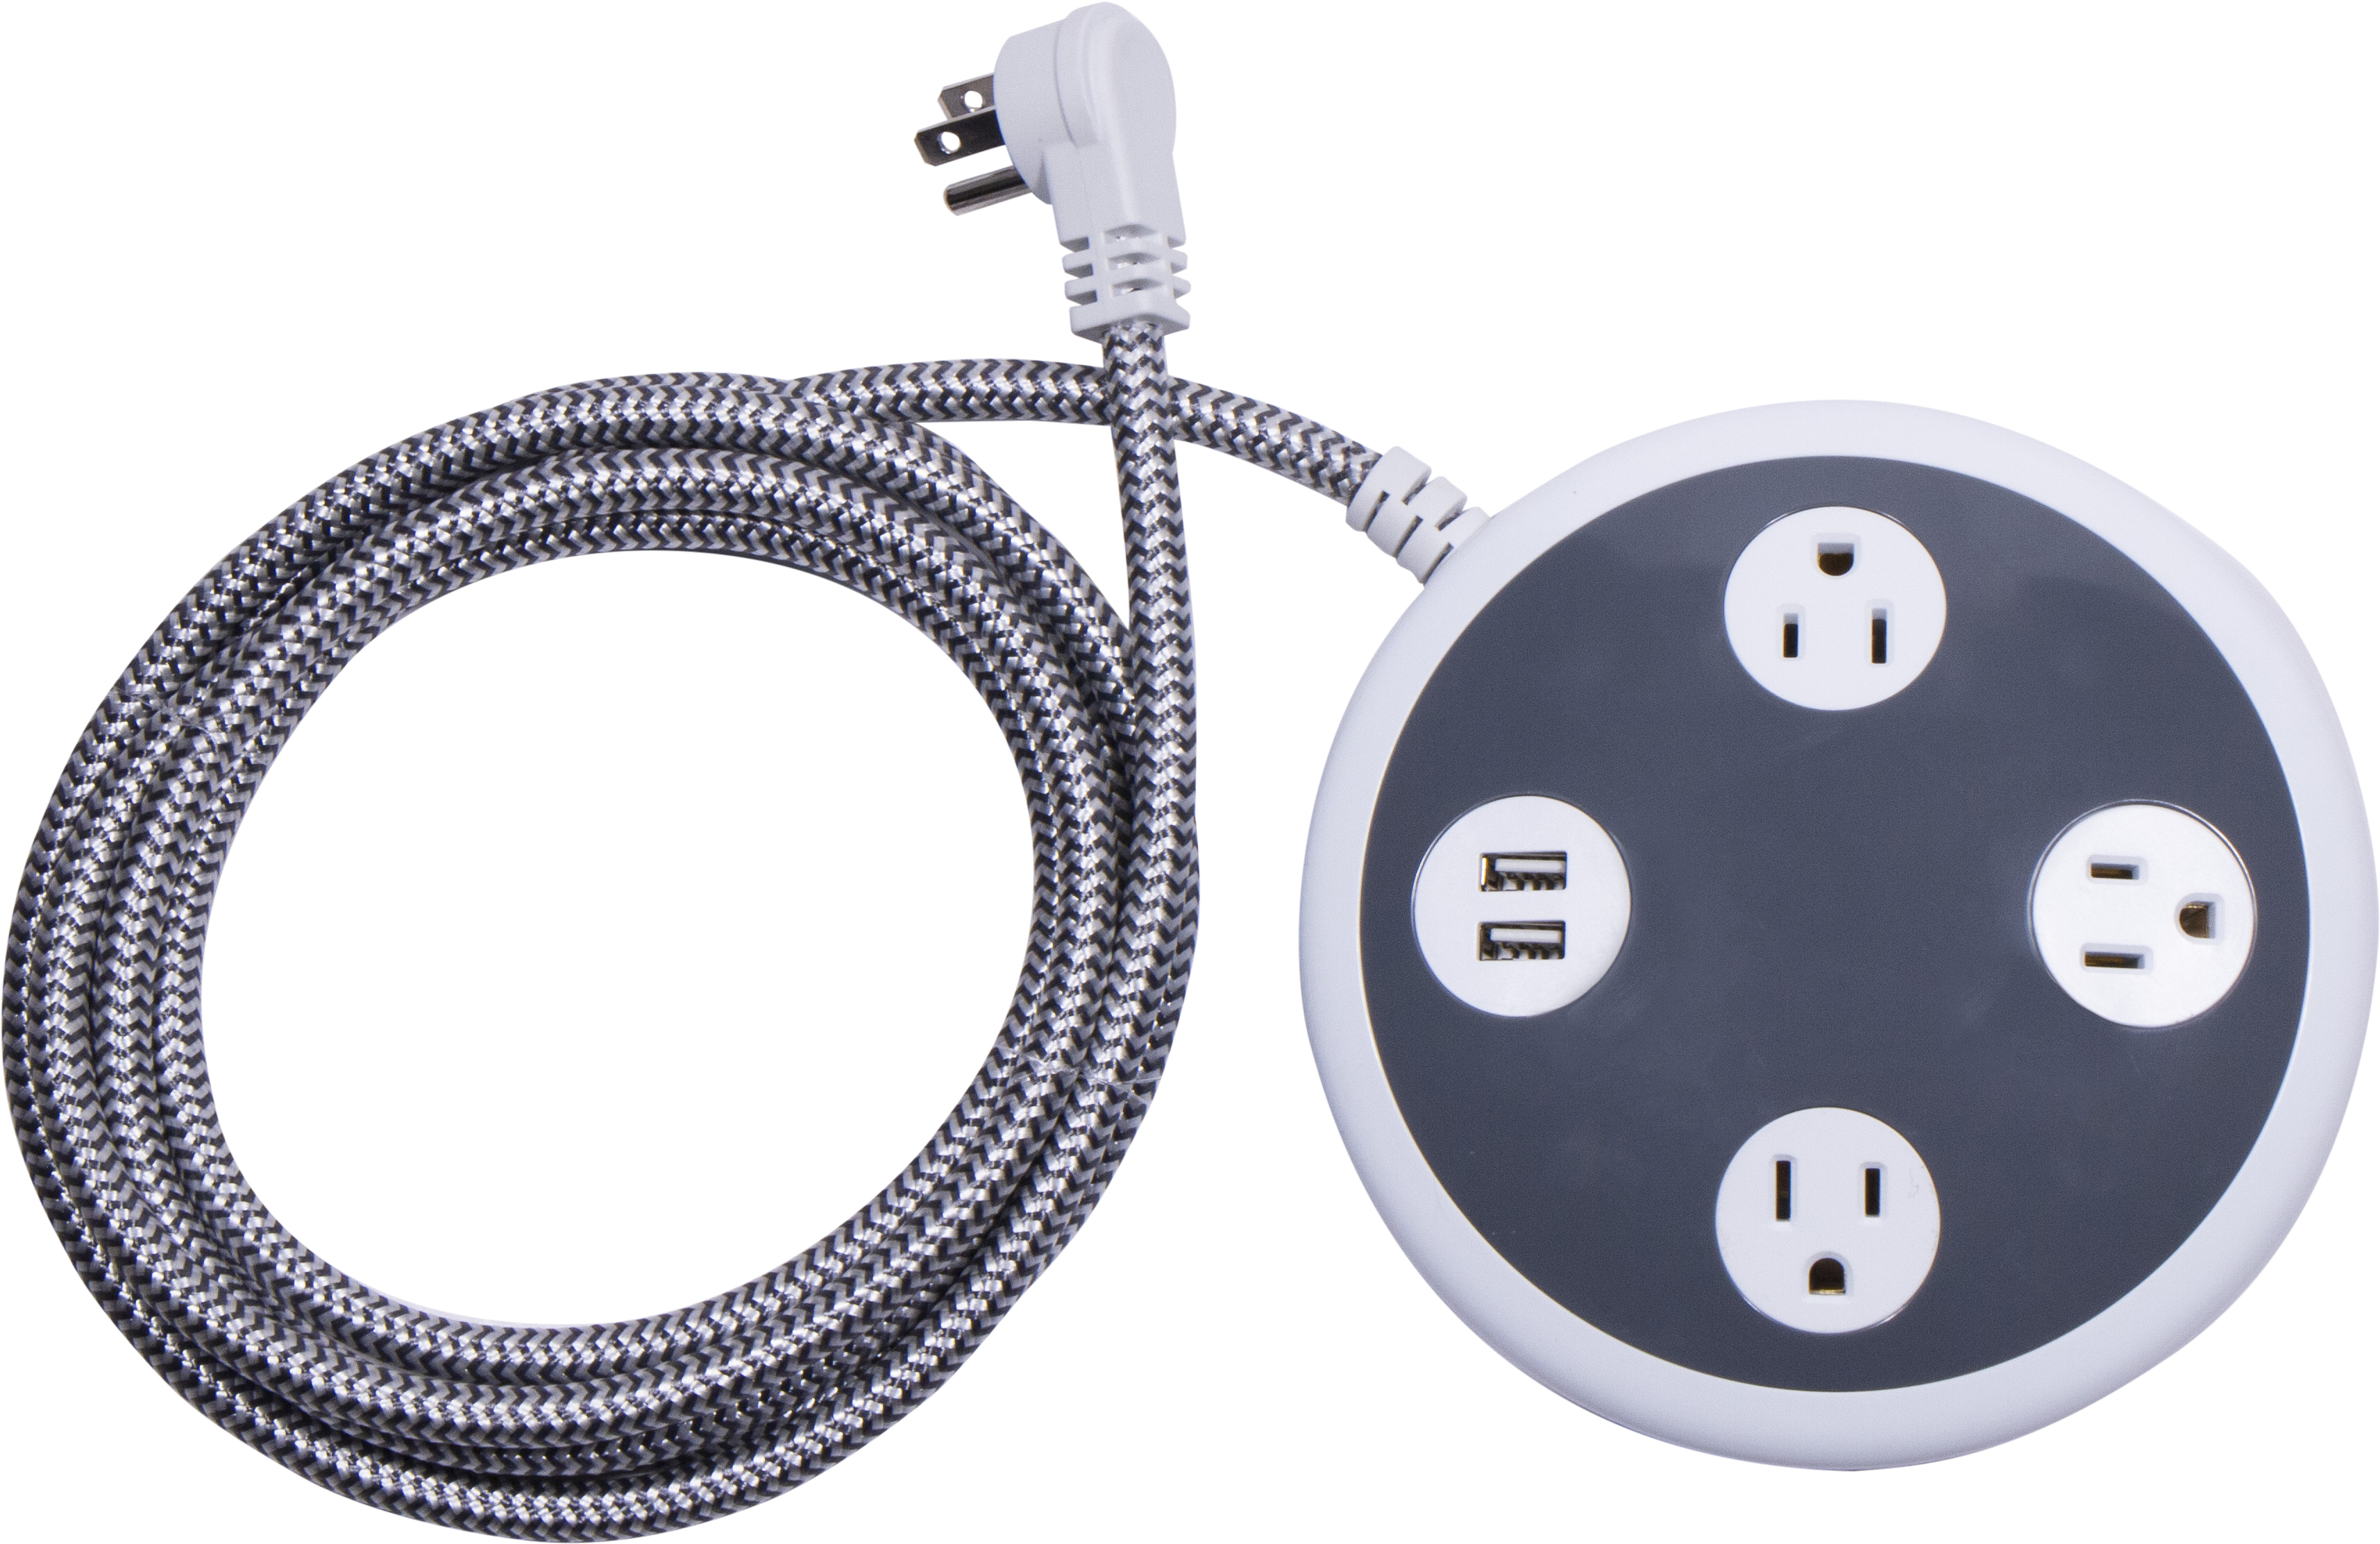 GE Pro 3-Outlet Power Center Extension Cord, 2-Port USB Charging, 8-Foot Cord, Surge Protection, 41386